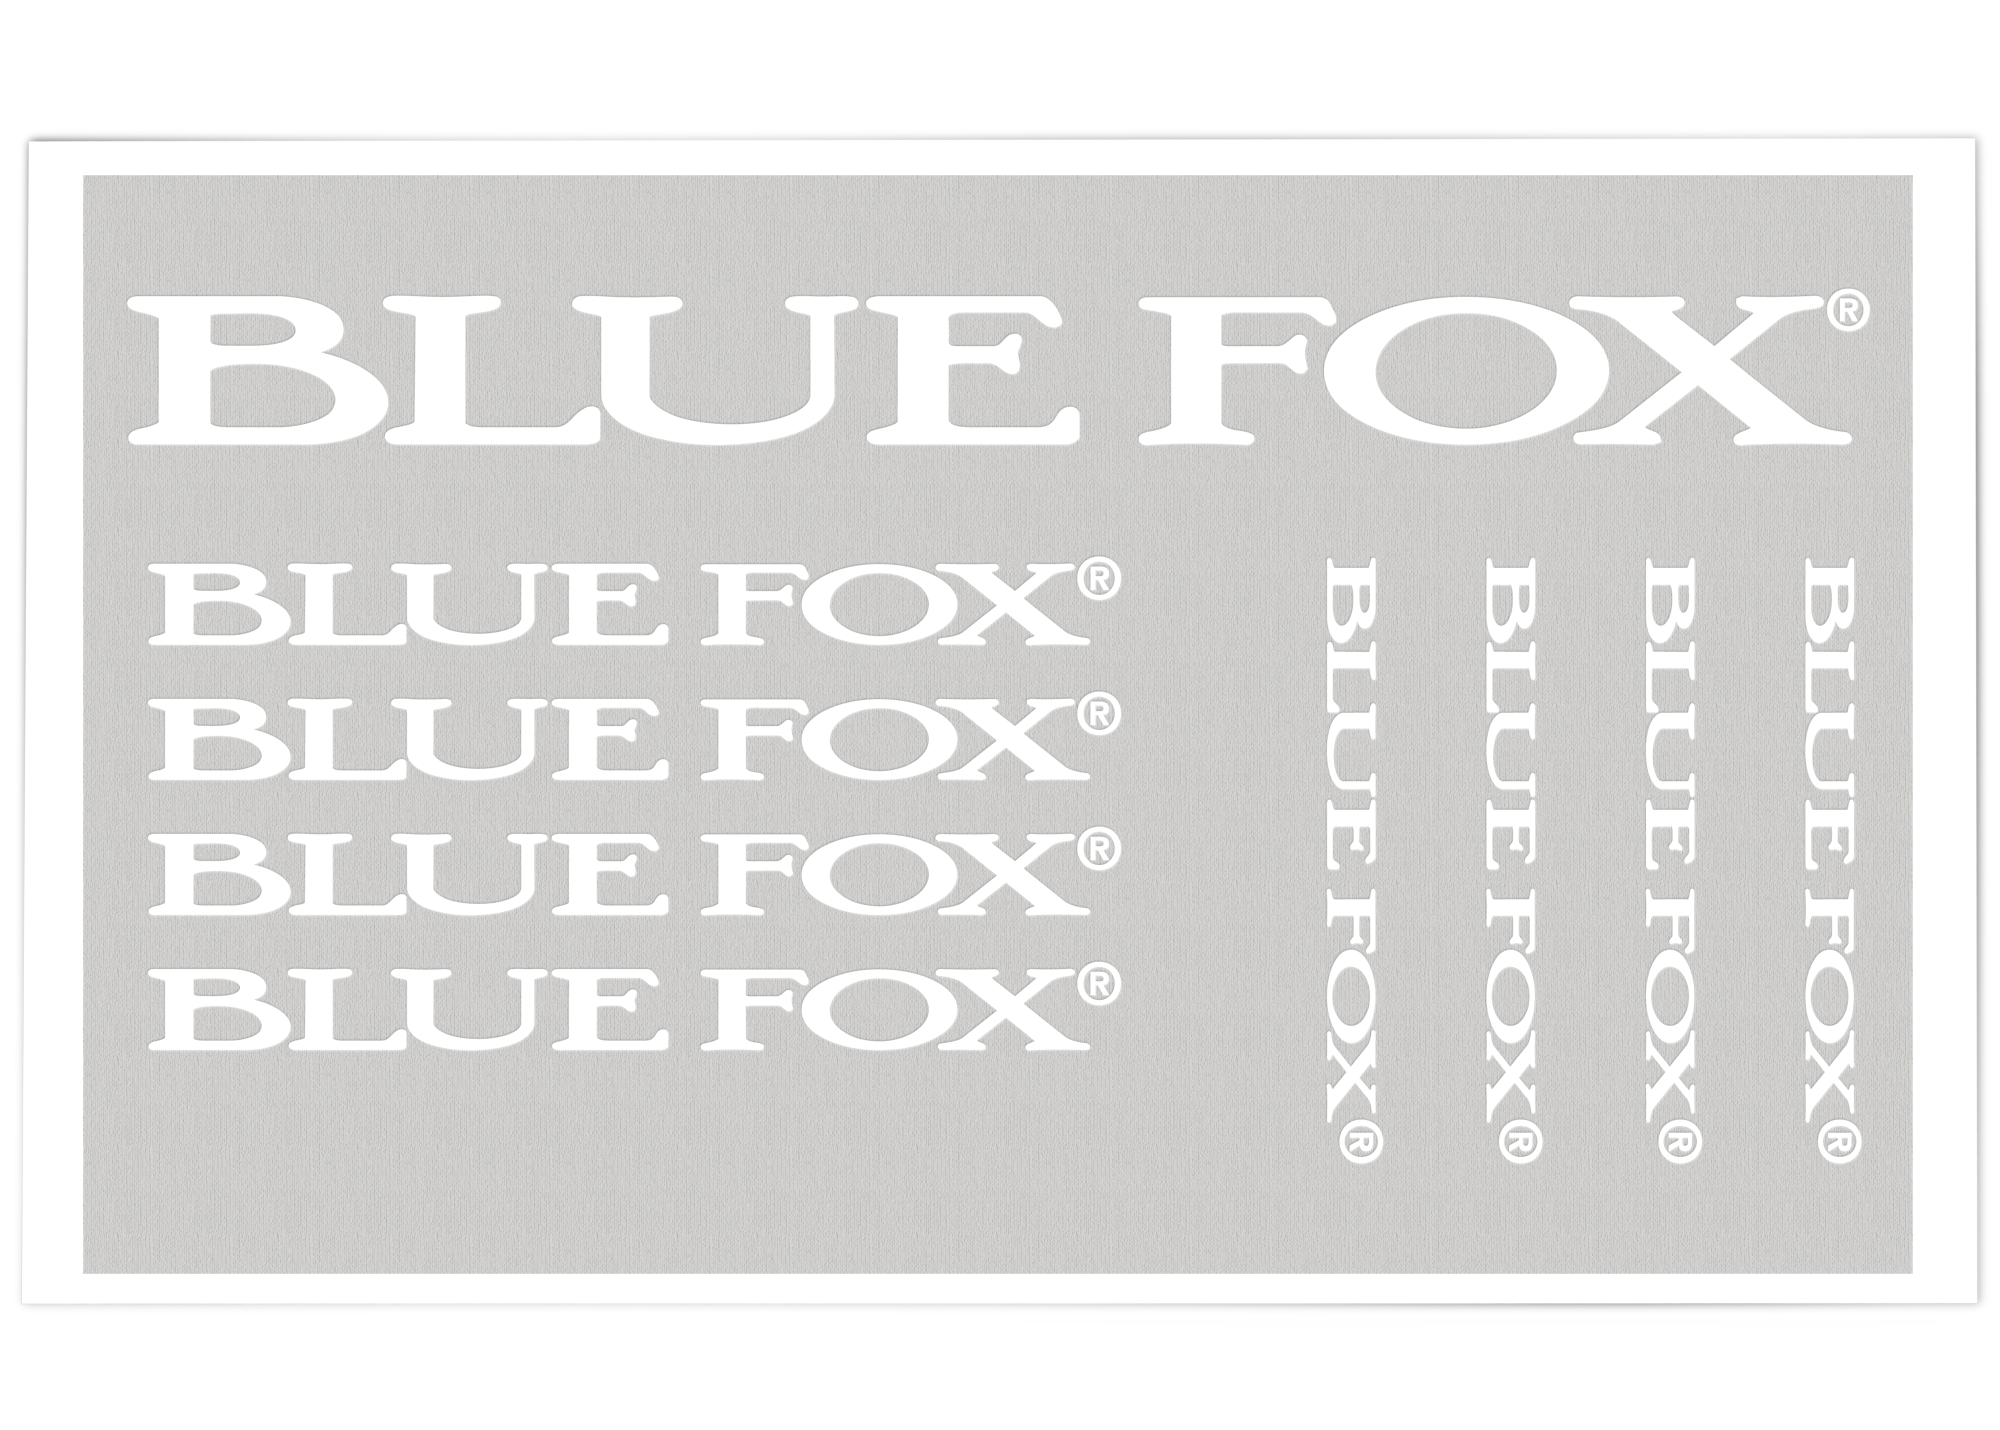 Blue Fox Pro Staff Decals Bulk